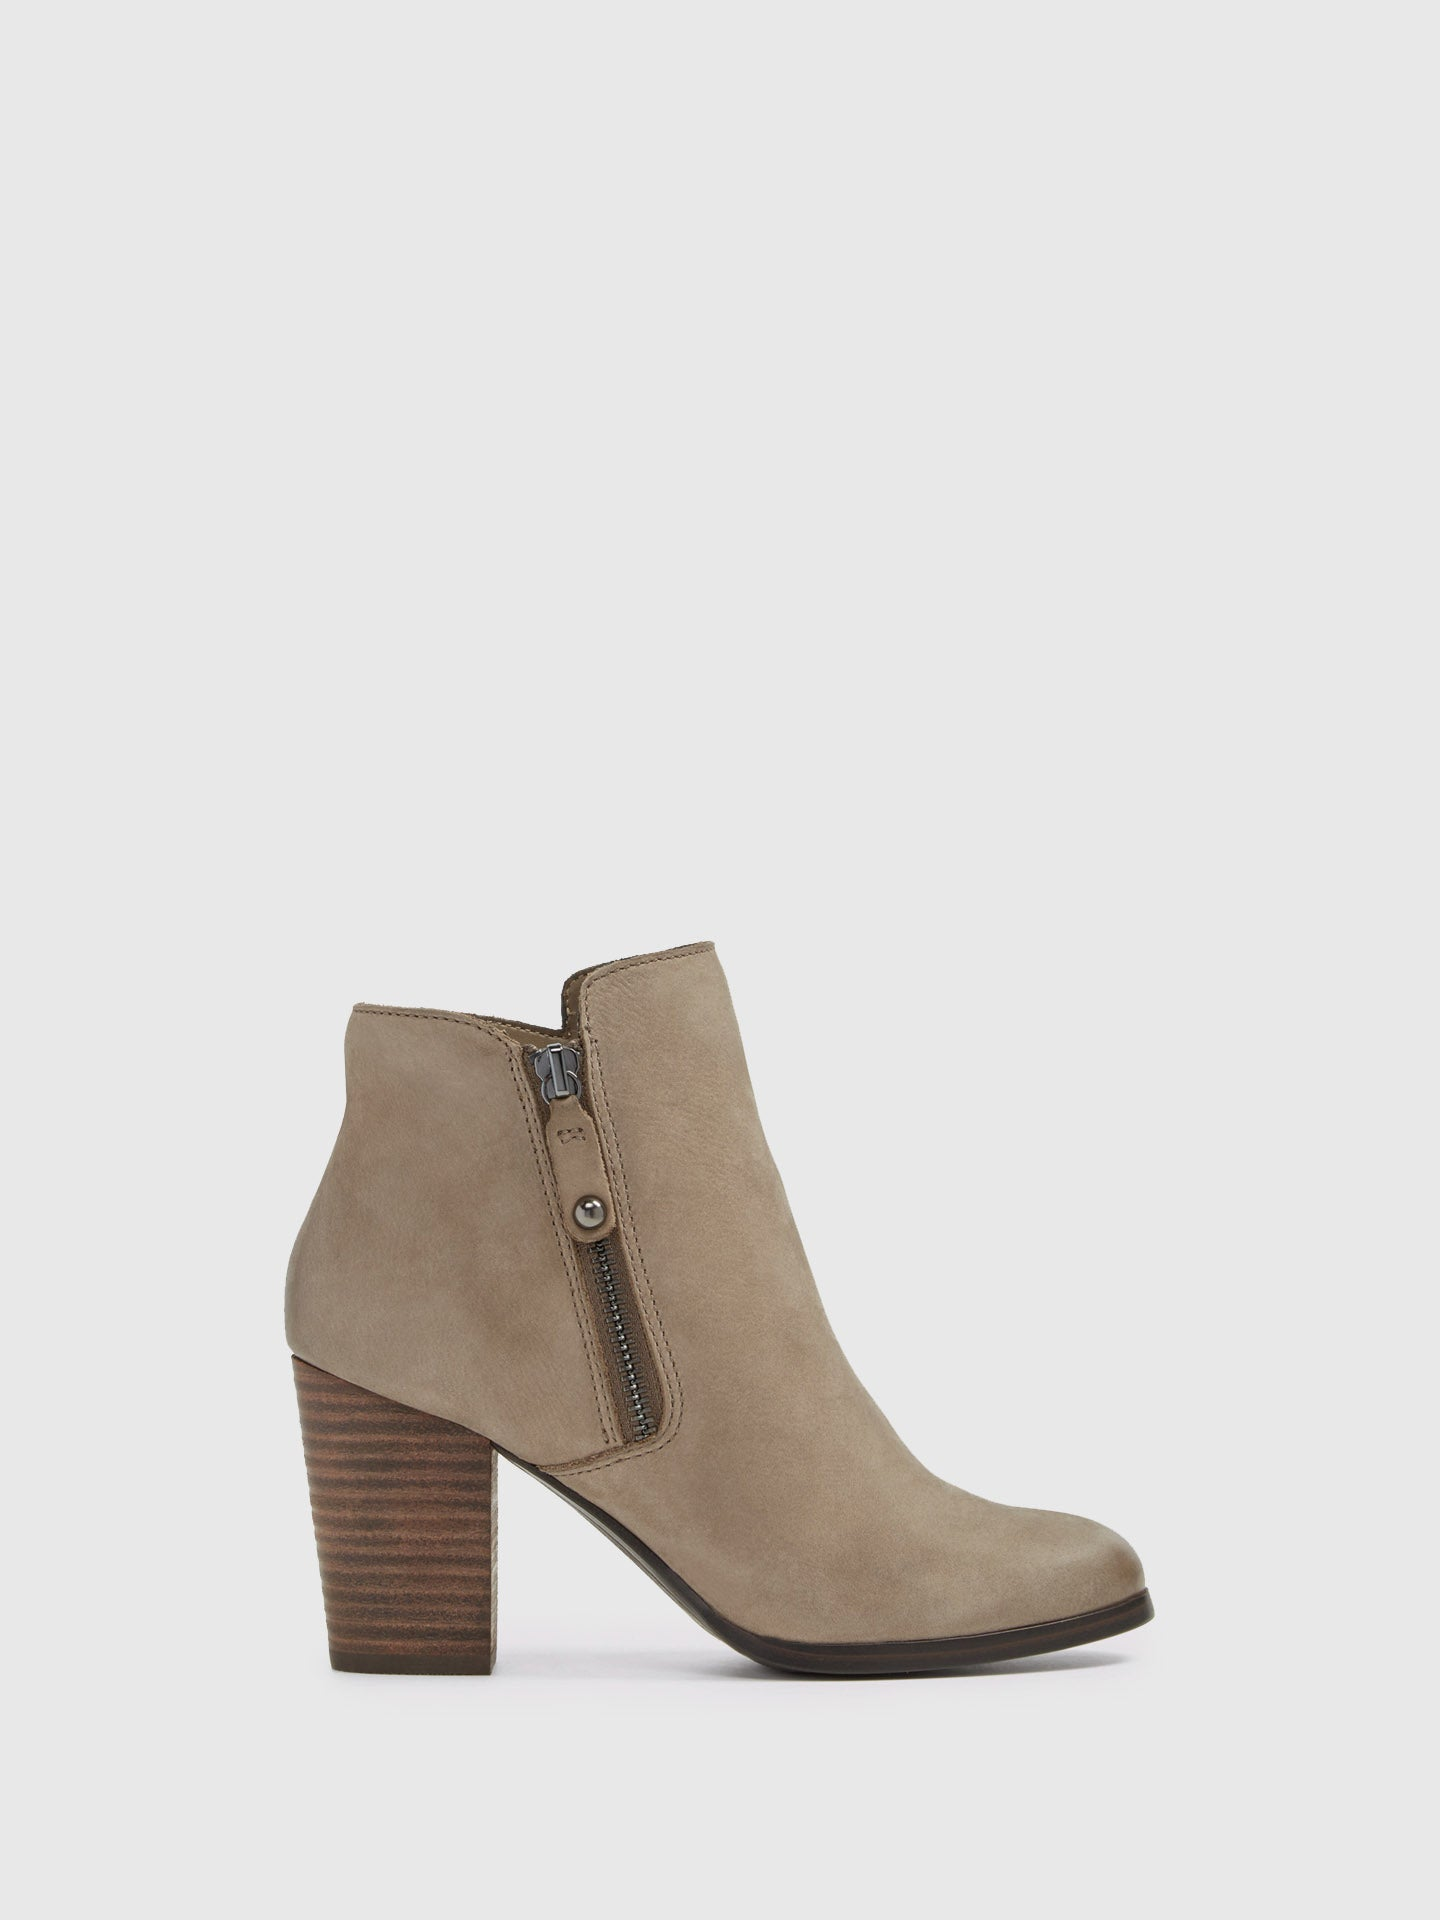 Aldo Gray Zip Up Ankle Boots